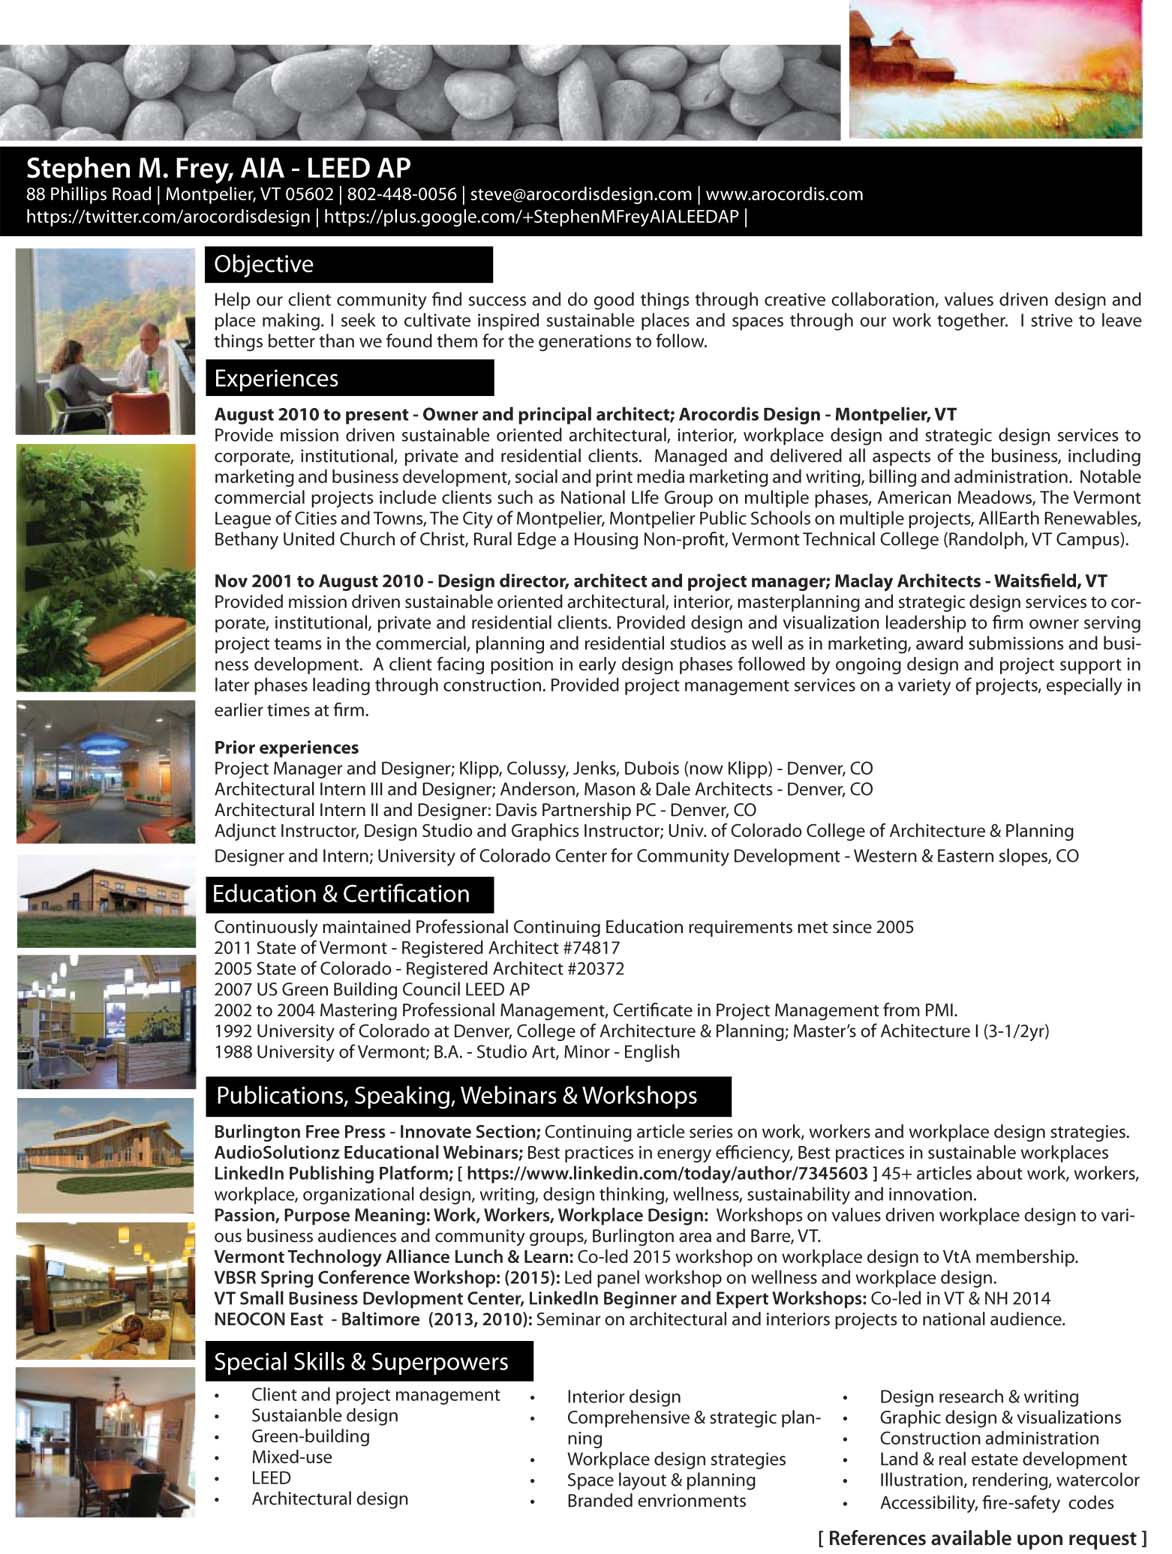 resume for stephen m frey aia leed ap for more info contact us at info arocordisdesign com or call us at 802 448 0056 or use the contact us form on sidebar to return to our home page